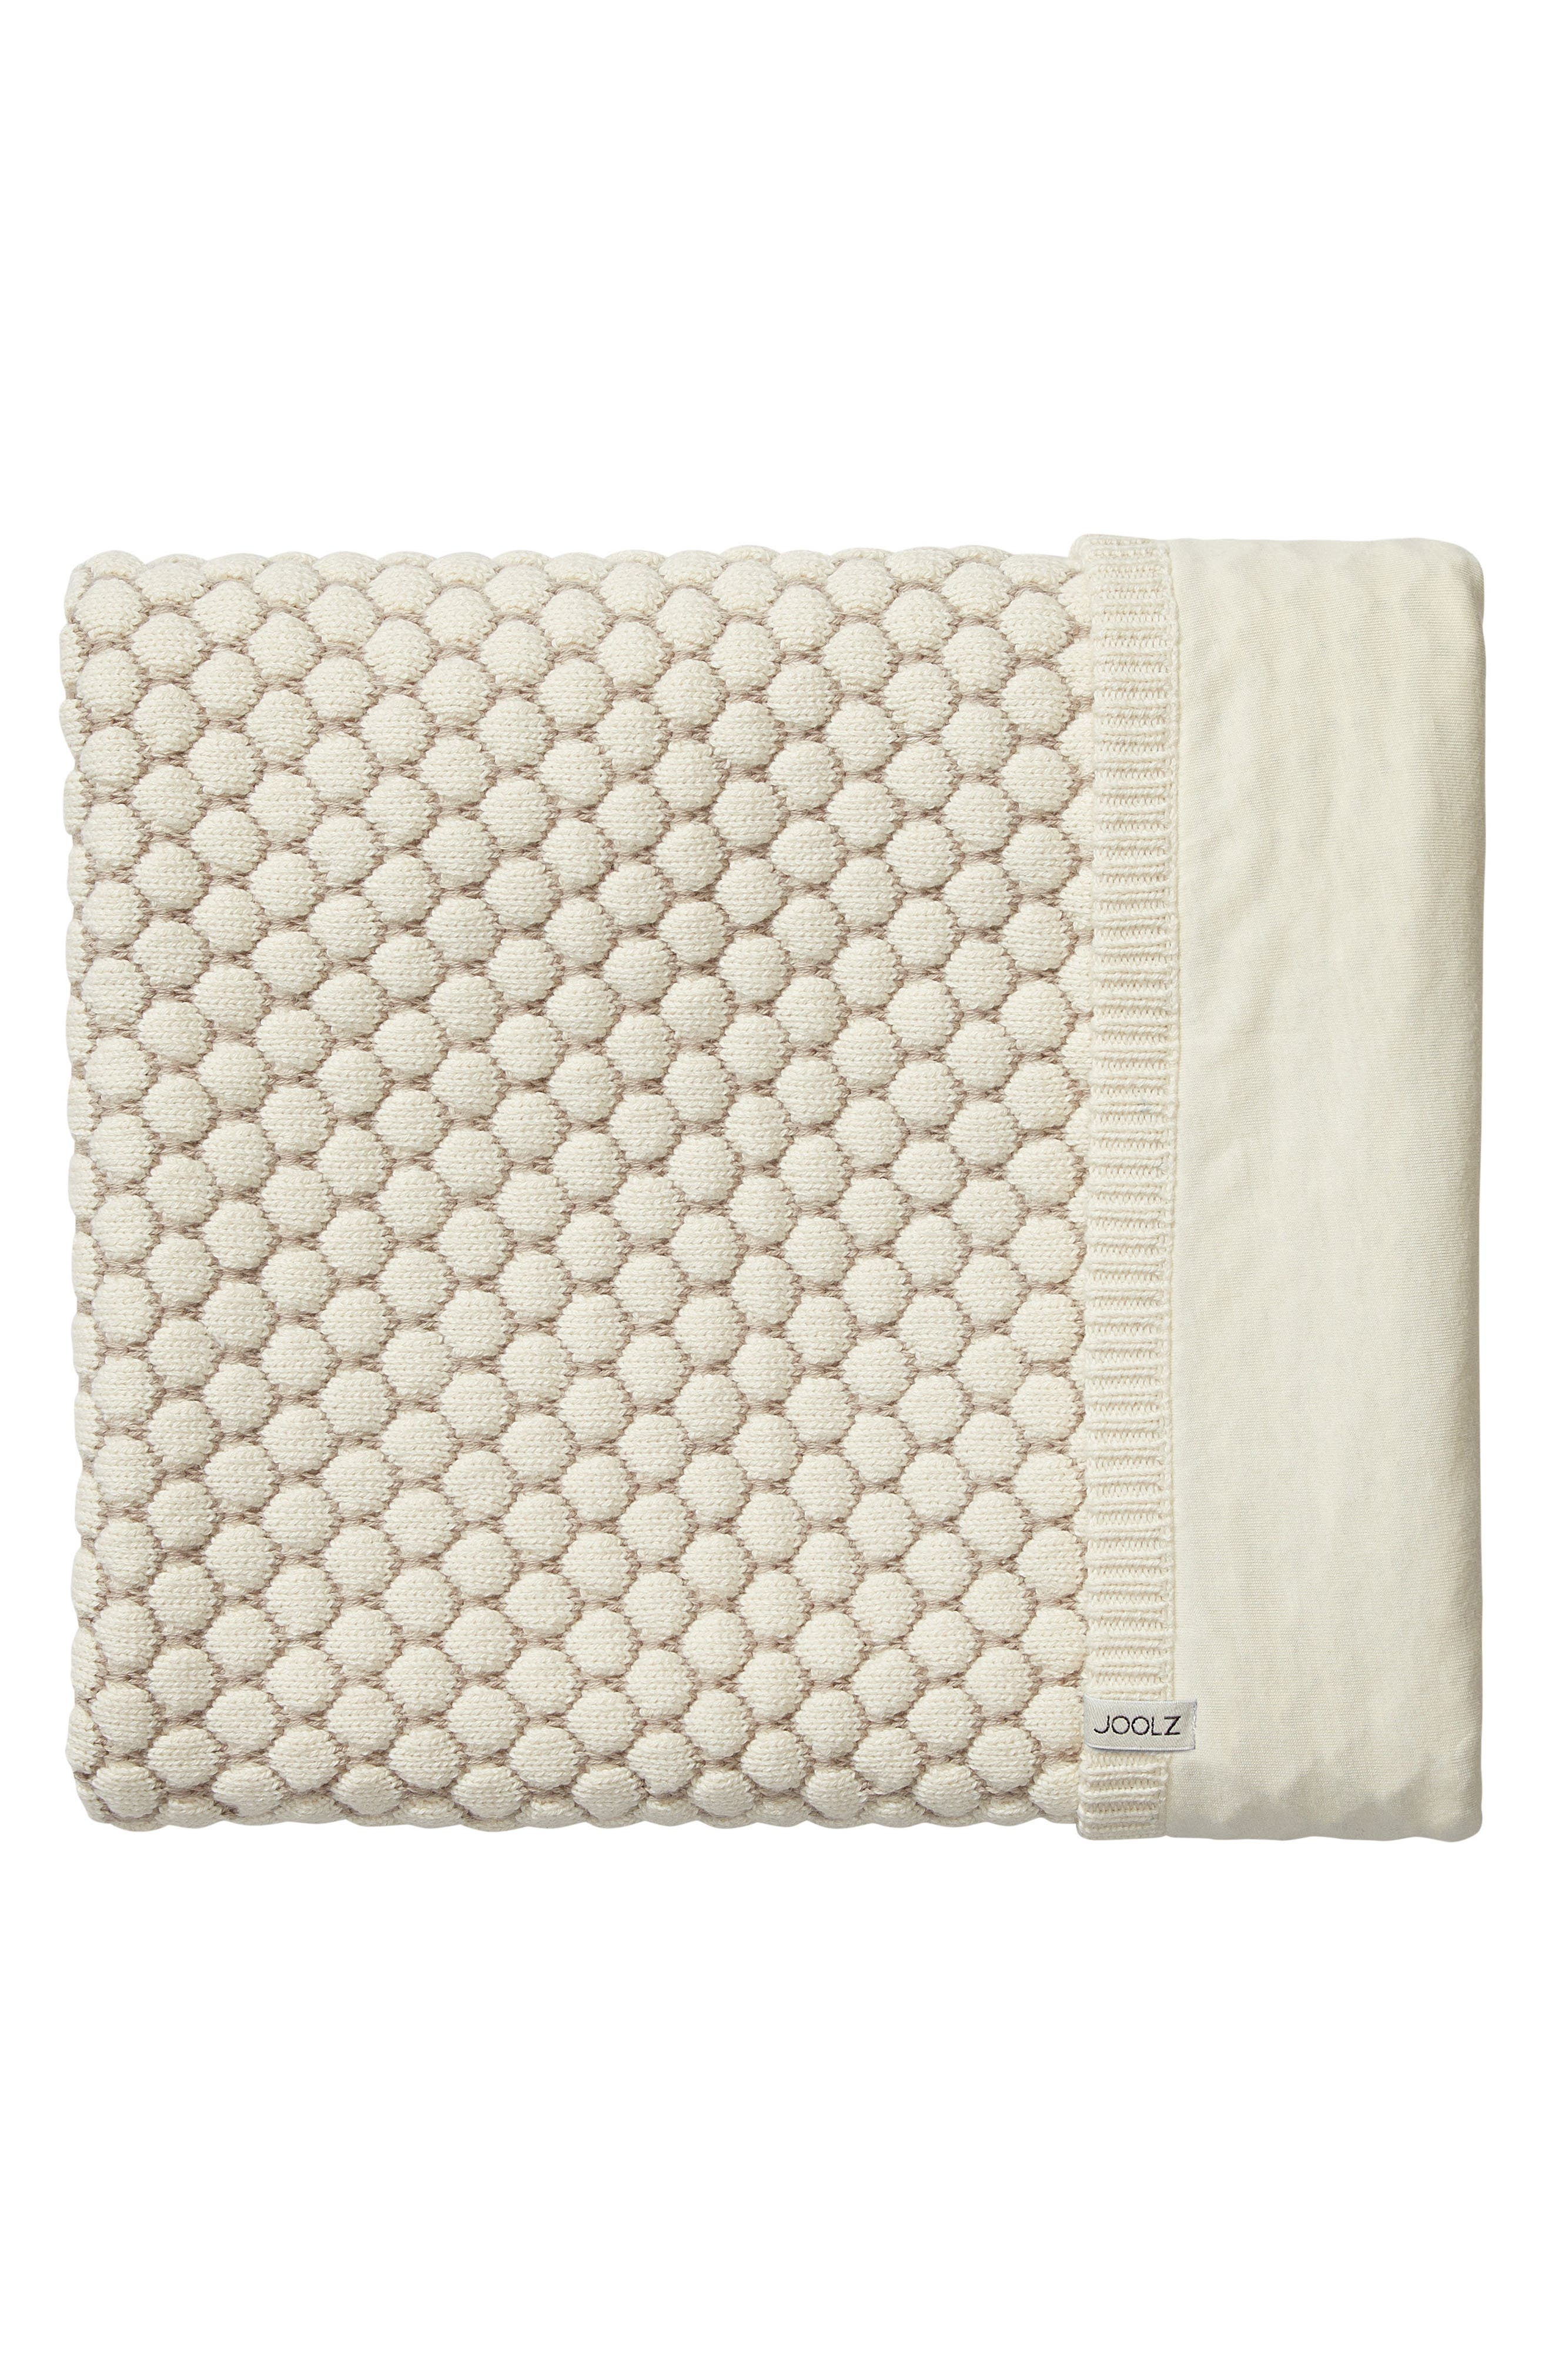 Essentials Honeycomb Organic Cotton Blanket,                         Main,                         color, Off White